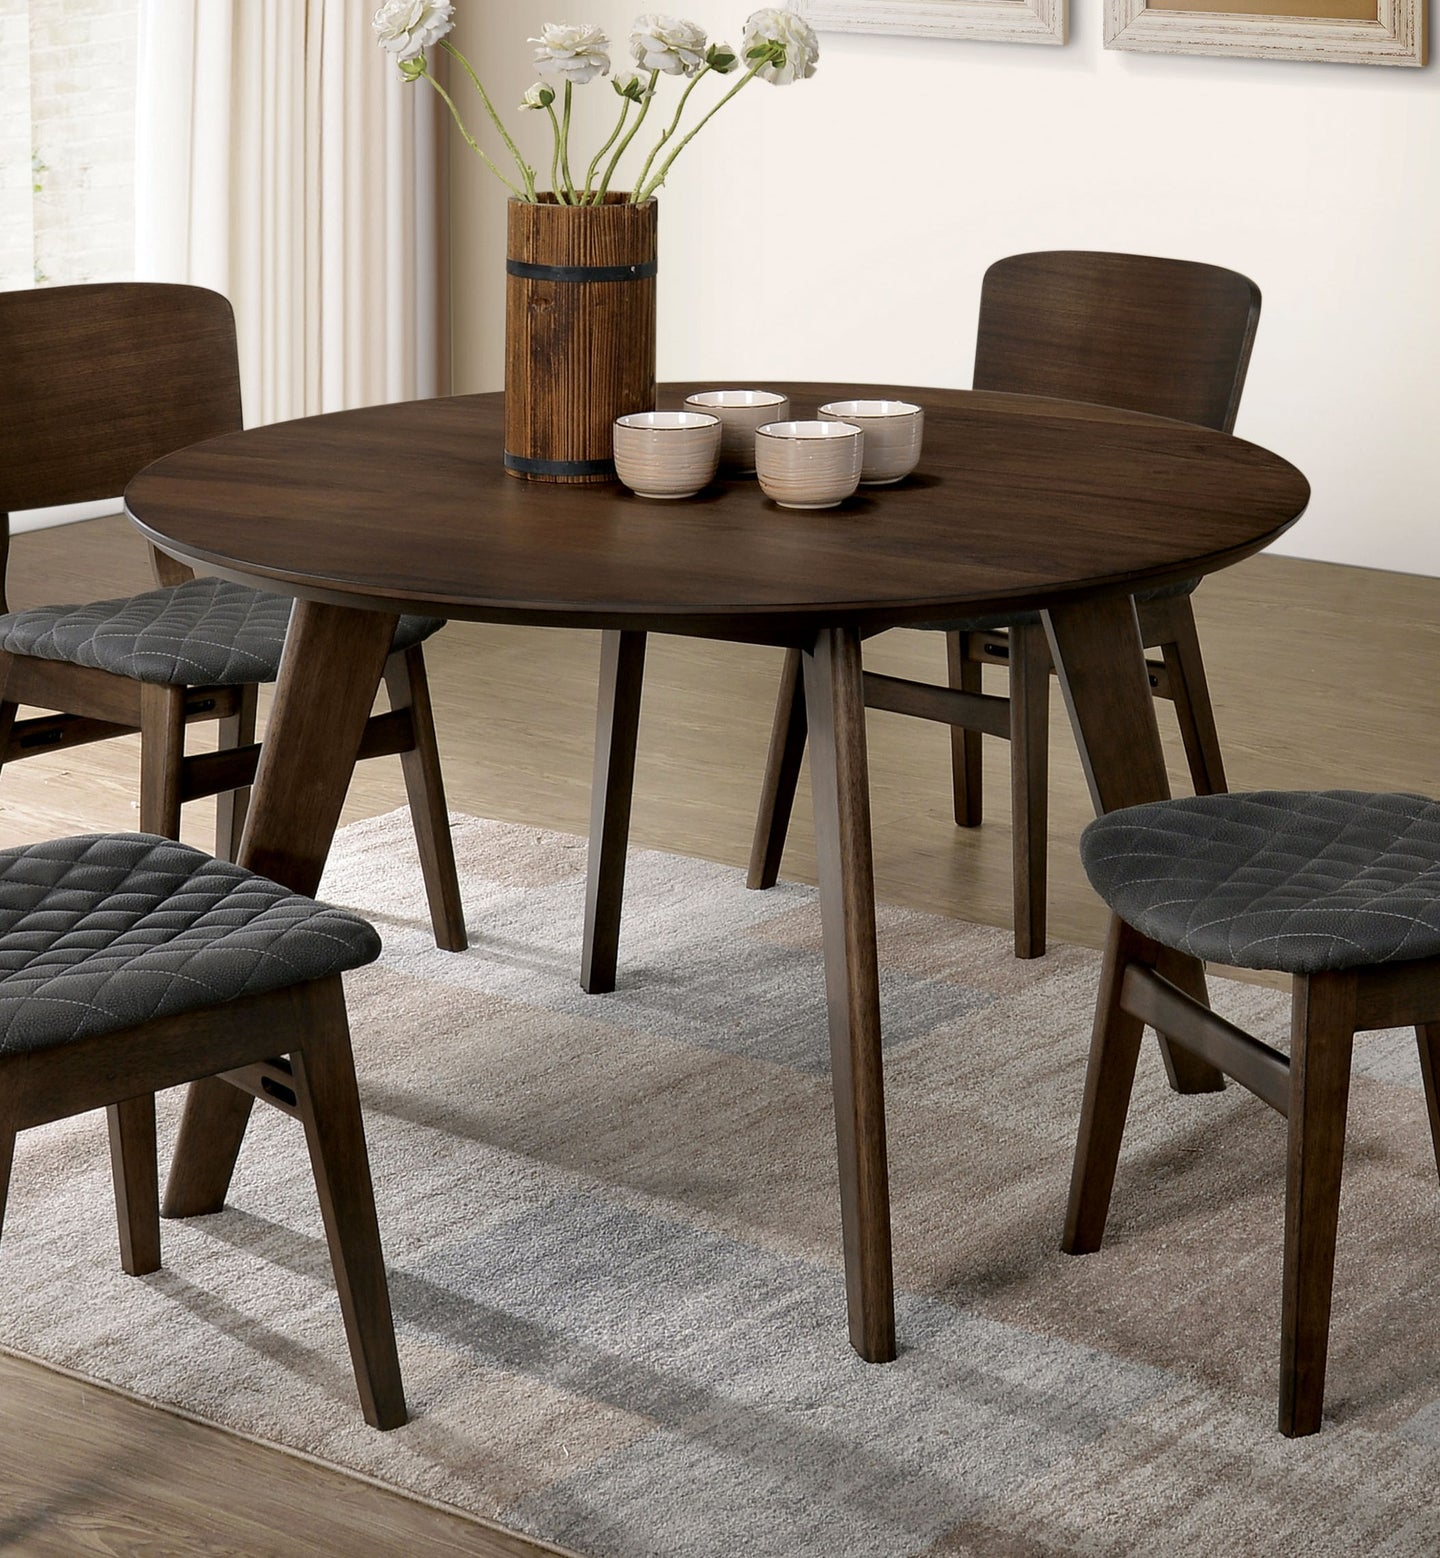 Furniture of America Shayna Gray Walnut Wood Round Dining Table